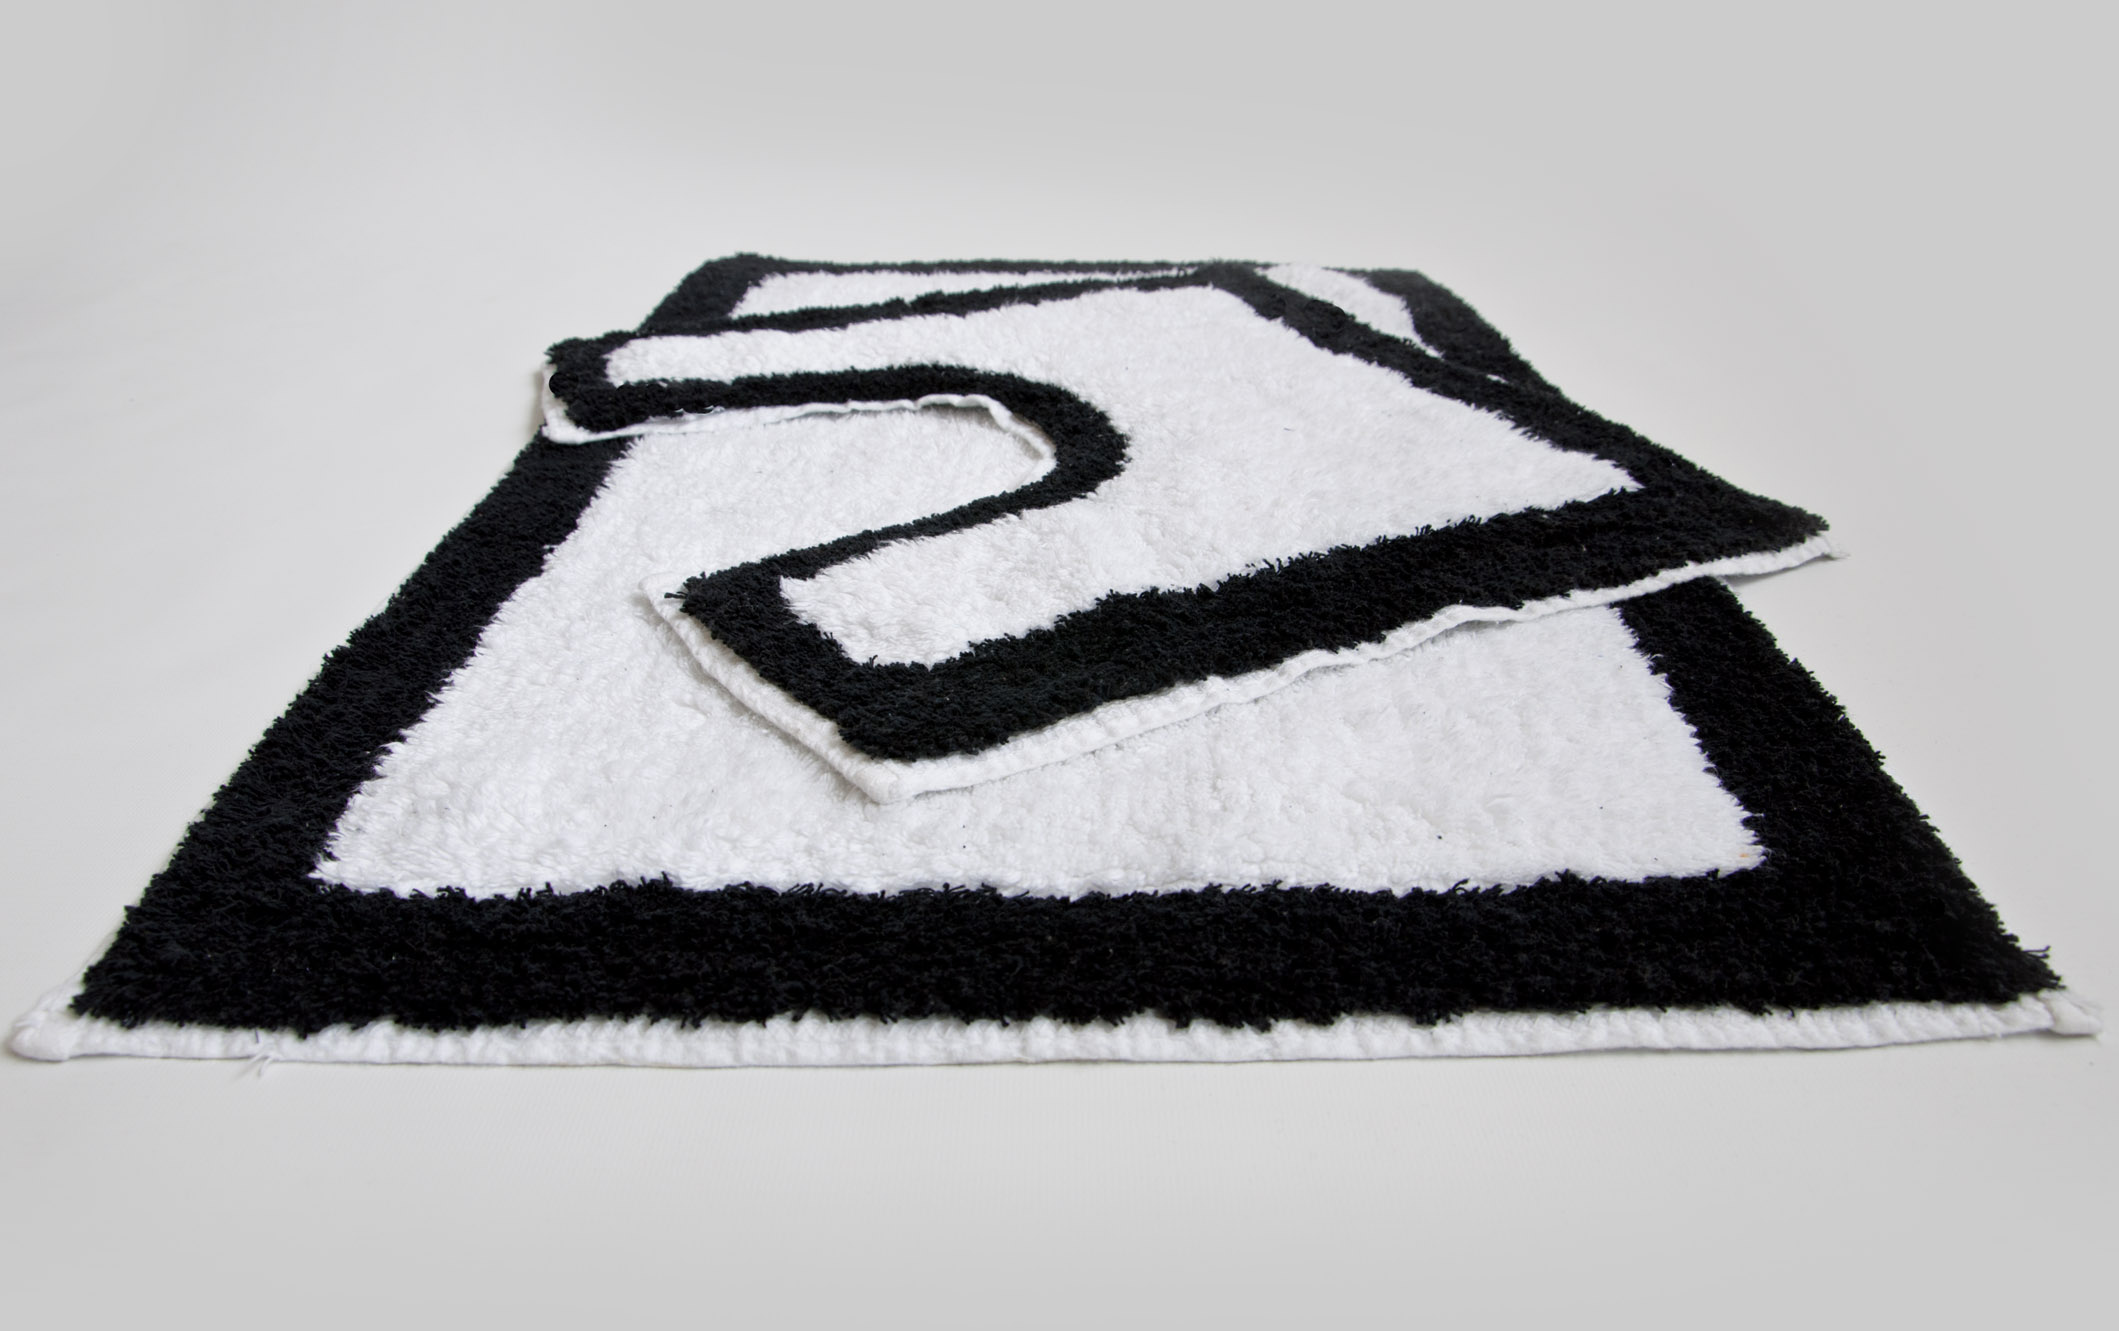 Make that first step out of the shower a comfortable one with the Zebra Shaped Bath Rug (19